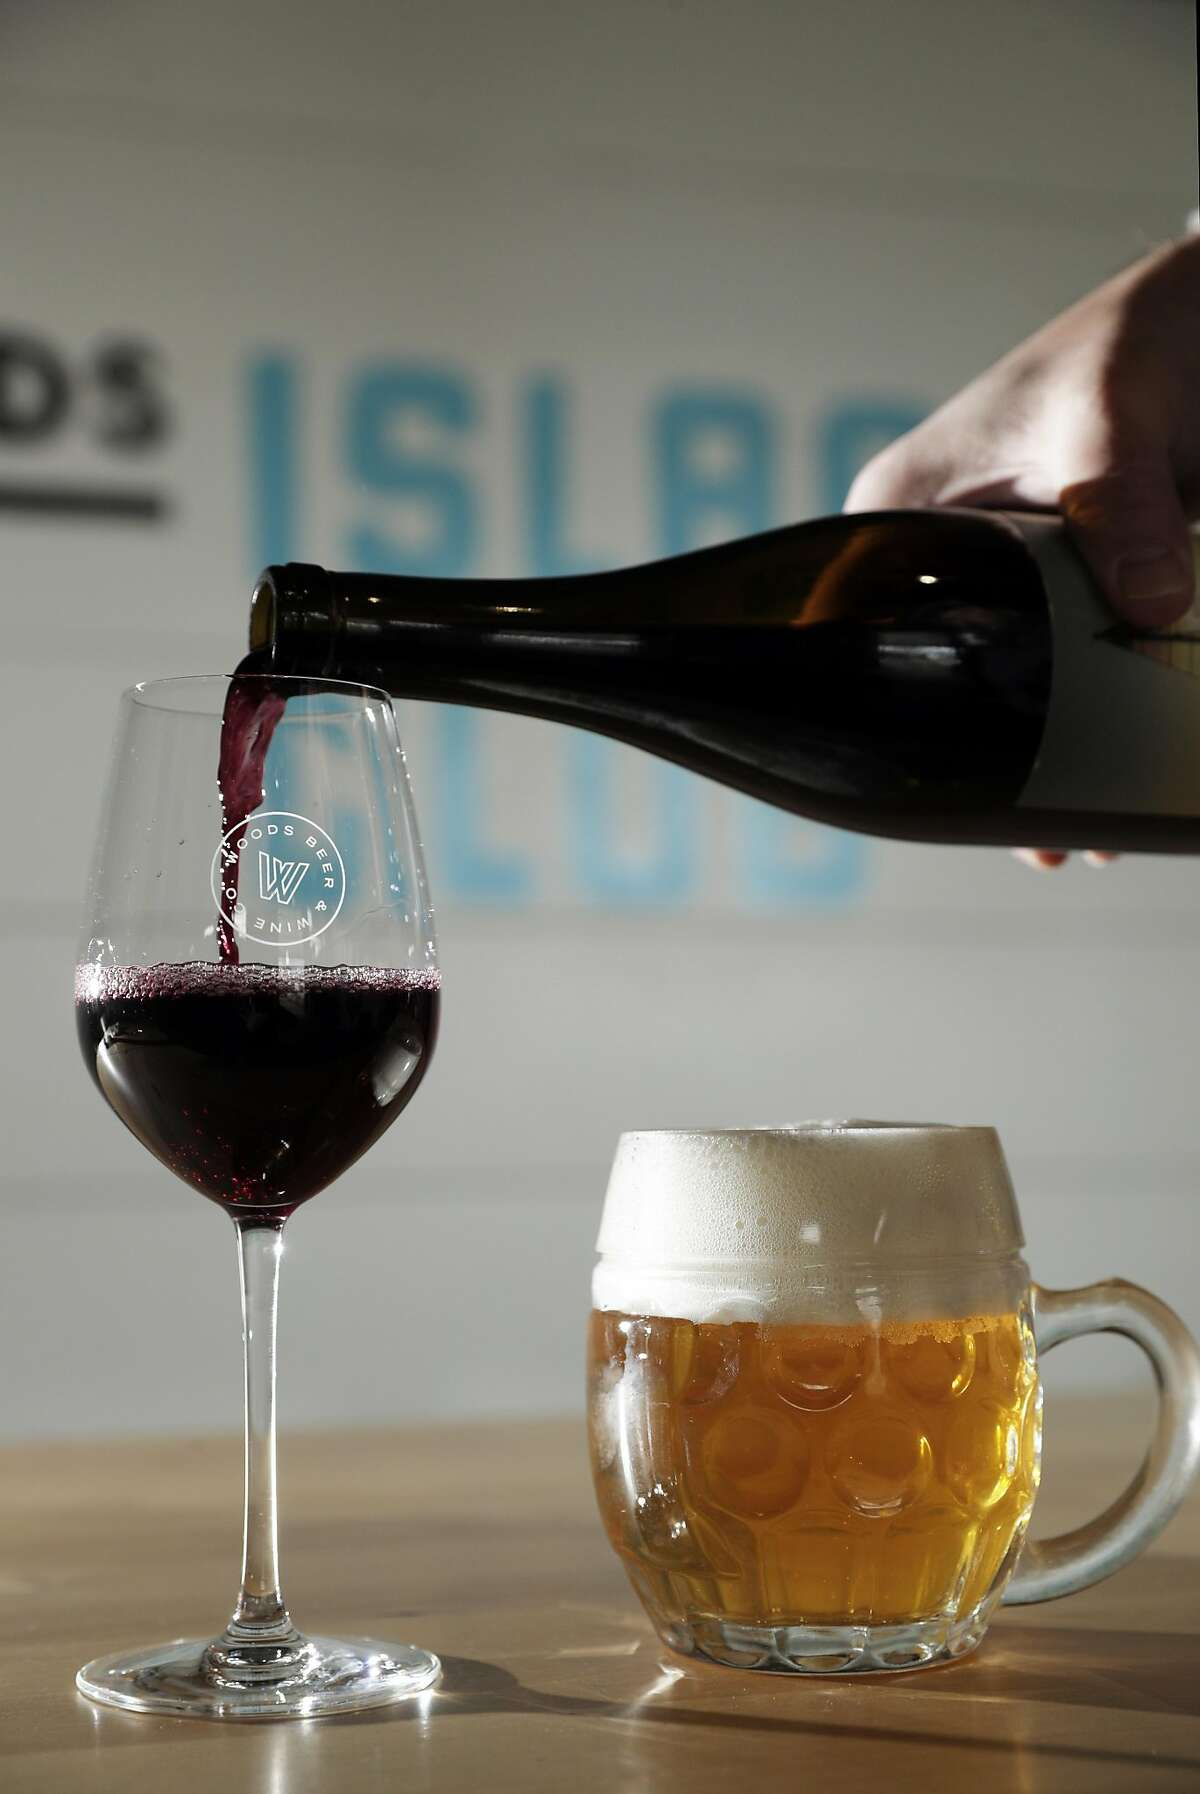 The Retro Pilsner, a Czech style pilsner, right, and the Day Sail Syrah left, served at Woods Island Club on Treasure Island in San Francisco, Calif., on Tuesday, December 10, 2019. A new state law in California, takes effect Jan 1, that will allow wineries, breweries and distilleries to have overlapping licenses. Woods Beer Co. is now also making wine at its Treasure Island facility.